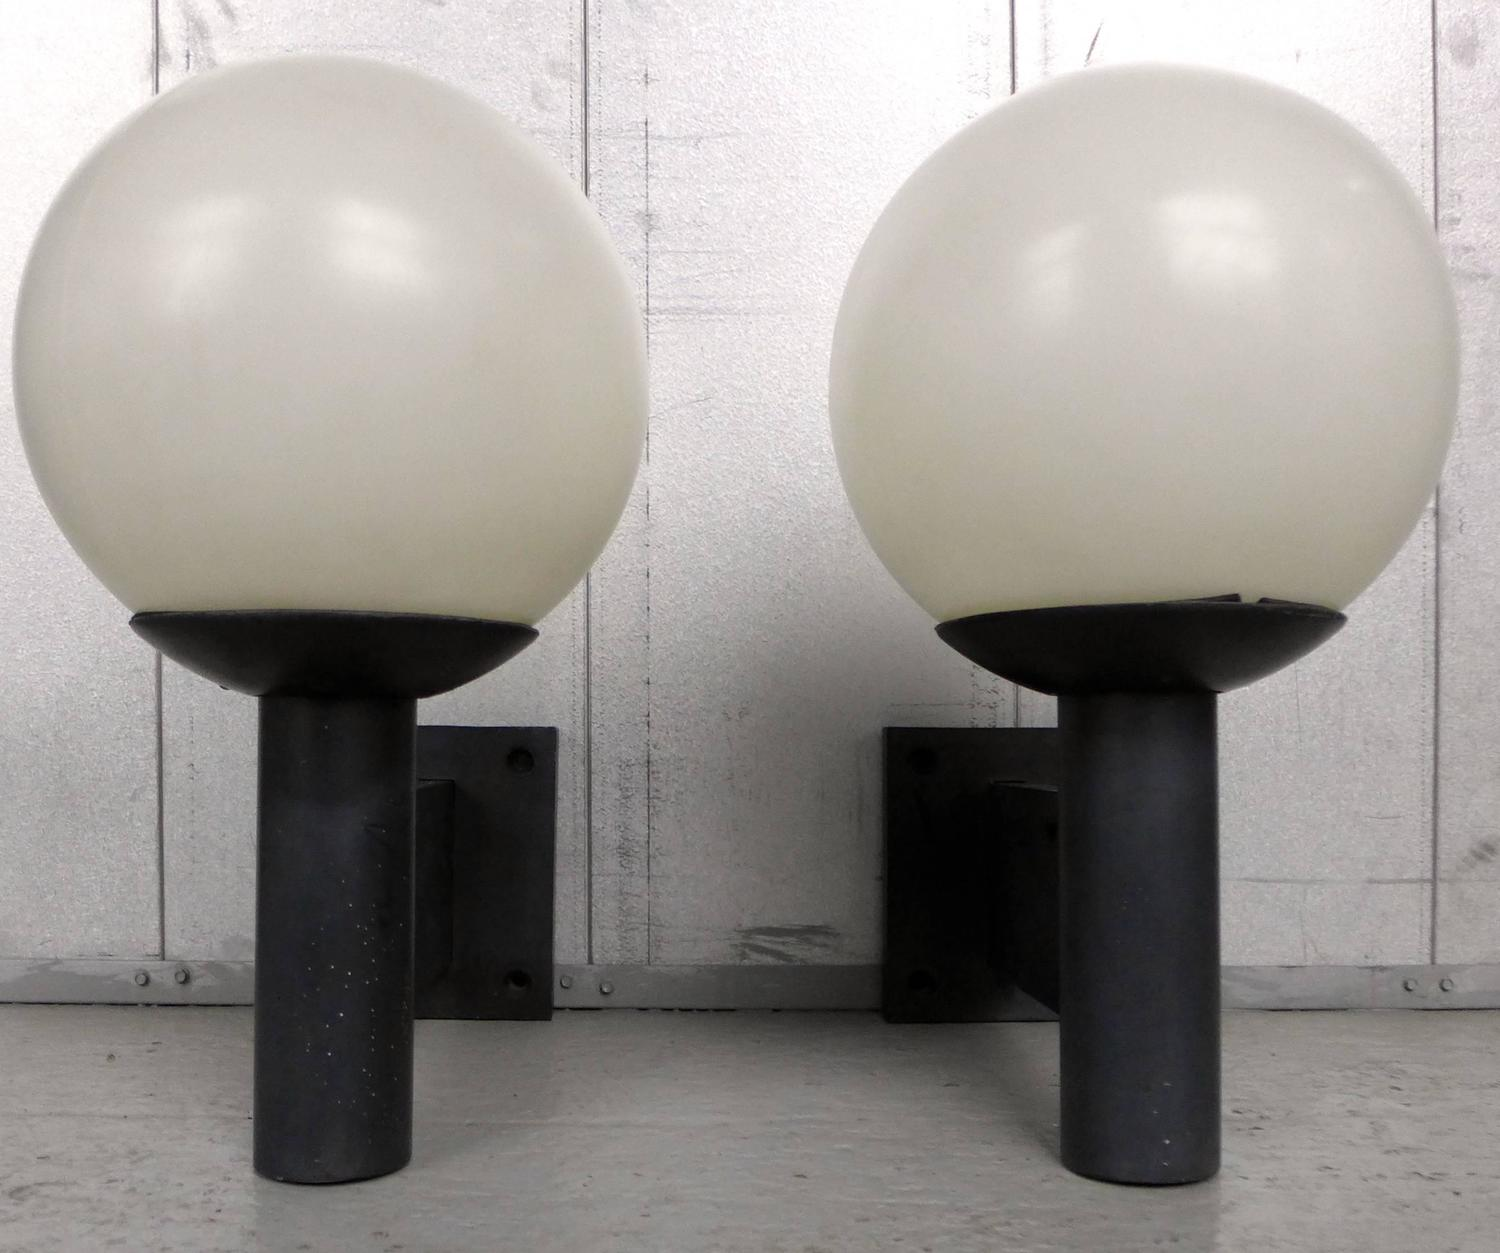 Habitat Lighting Wall Lights : Pair of Habitat Outdoor Sconces at 1stdibs